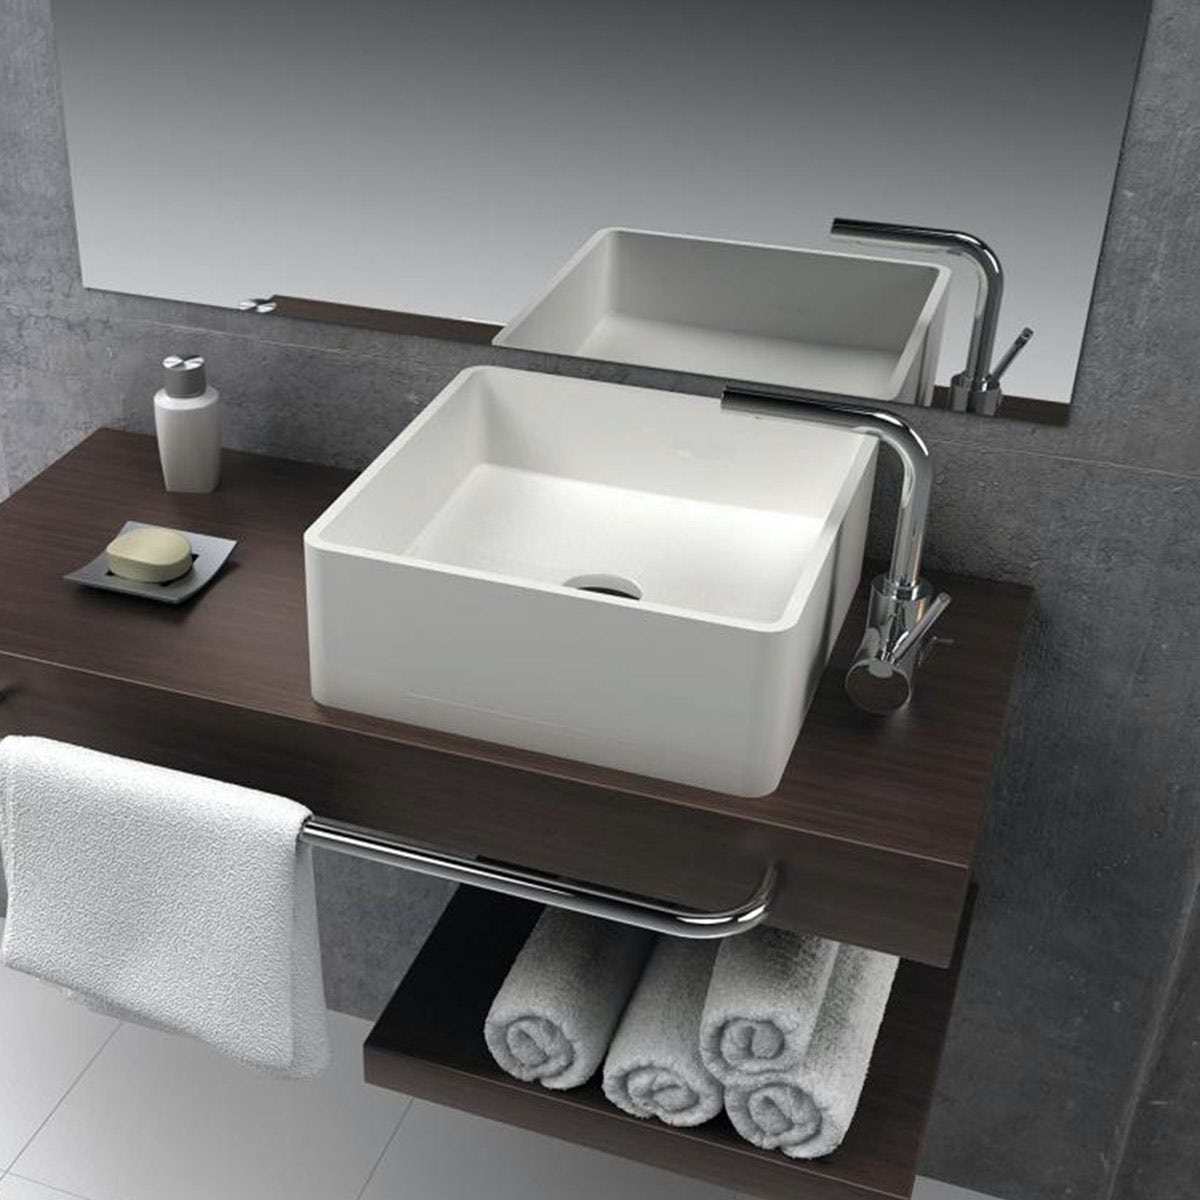 mode carpi solid surface stone resin square countertop basin 400mm. Black Bedroom Furniture Sets. Home Design Ideas